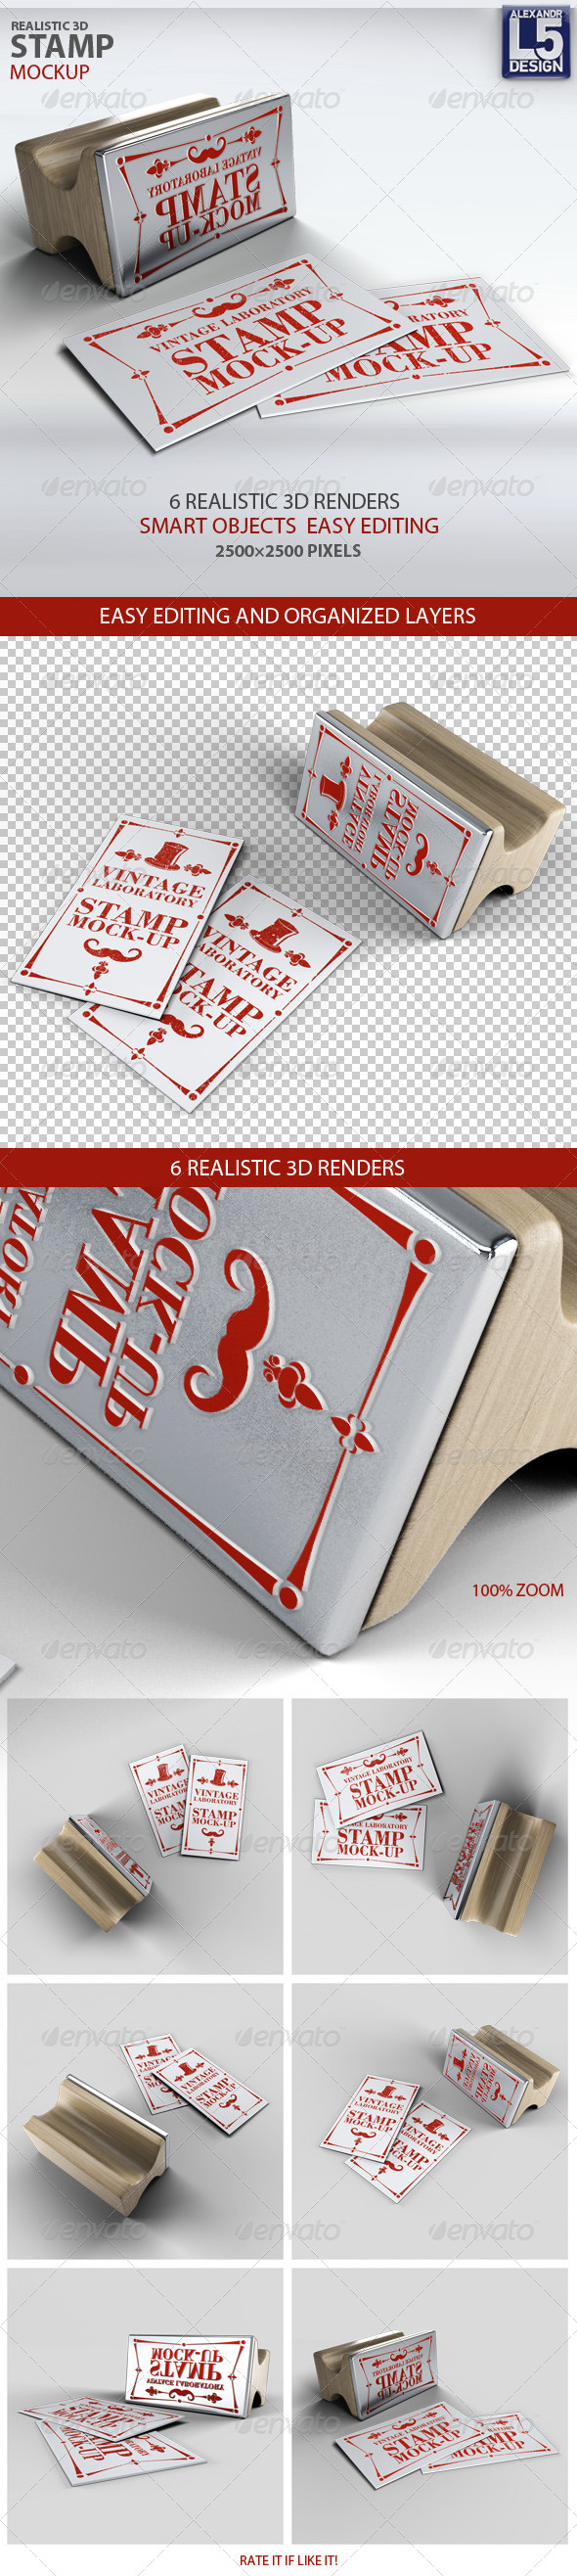 Stamp Business Card Mock-Up - Product Mock-Ups Graphics